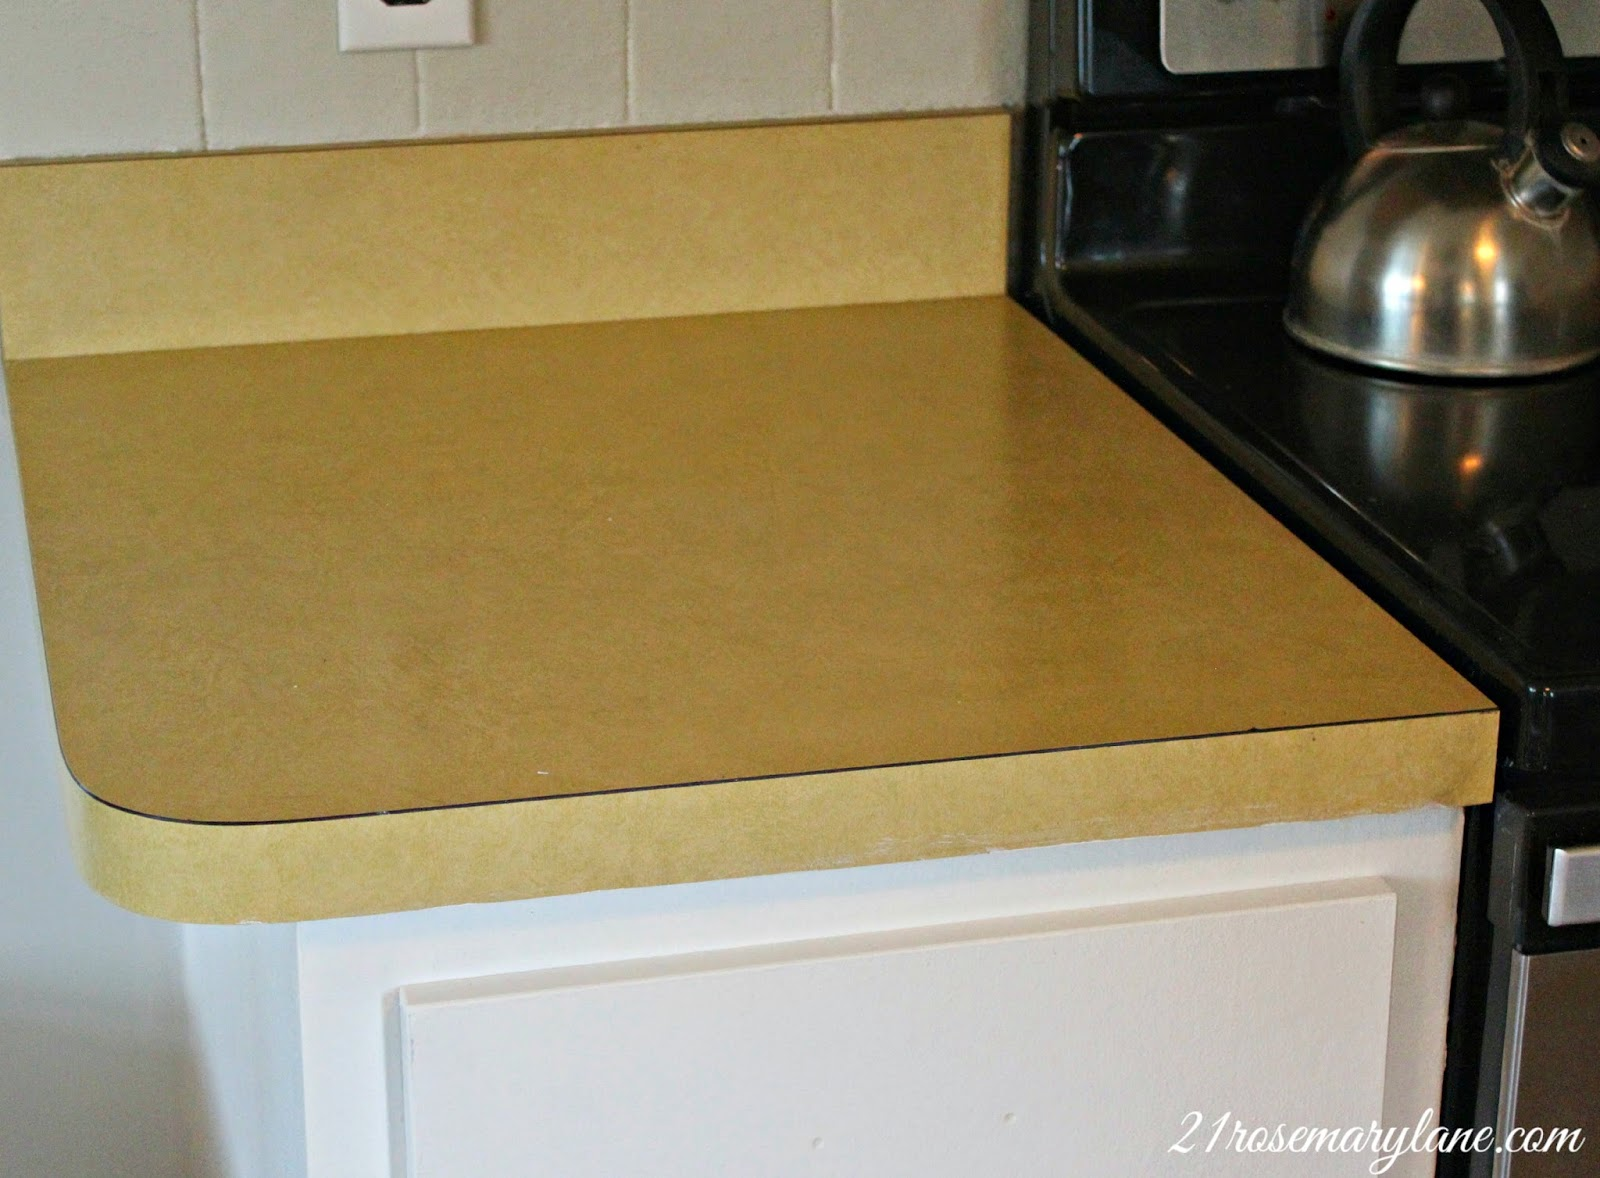 21 Rosemary Lane: Transformation of a 1970's Formica Countertop ...